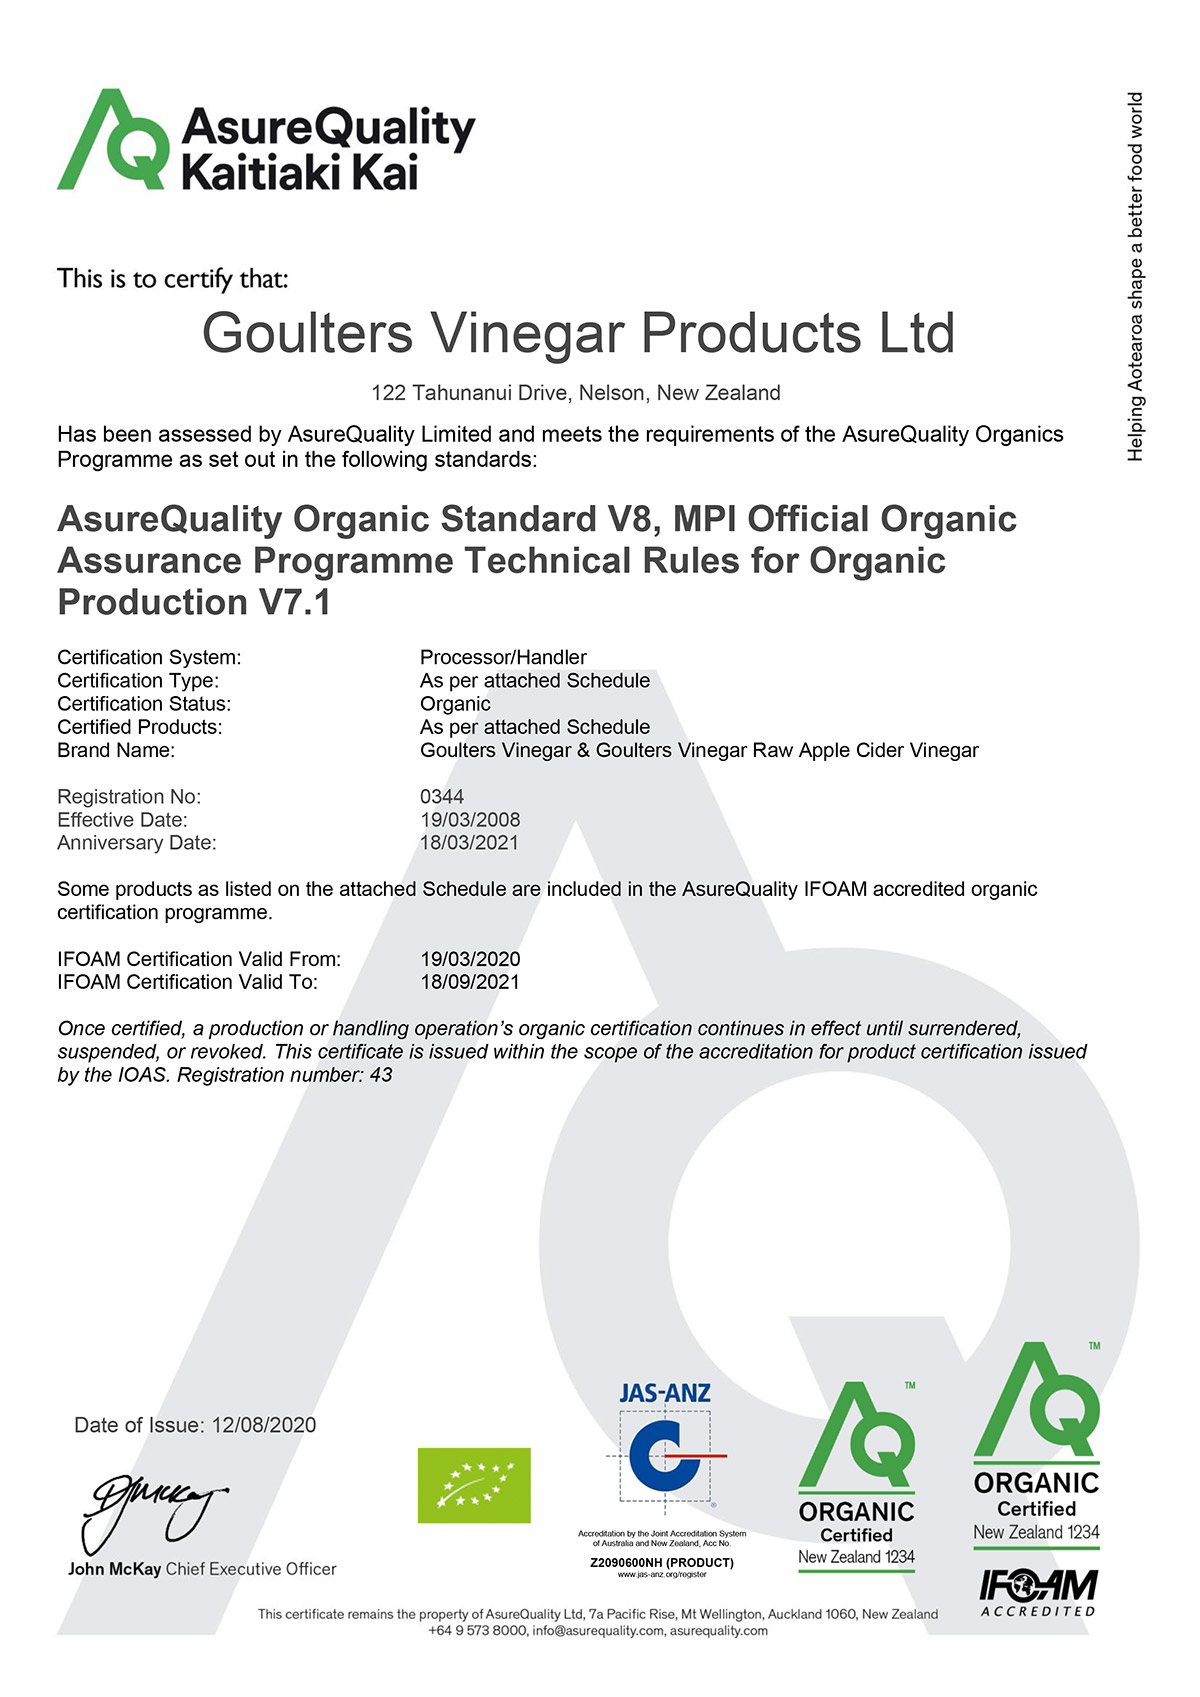 Goulter's Organic certification from AsureQuality